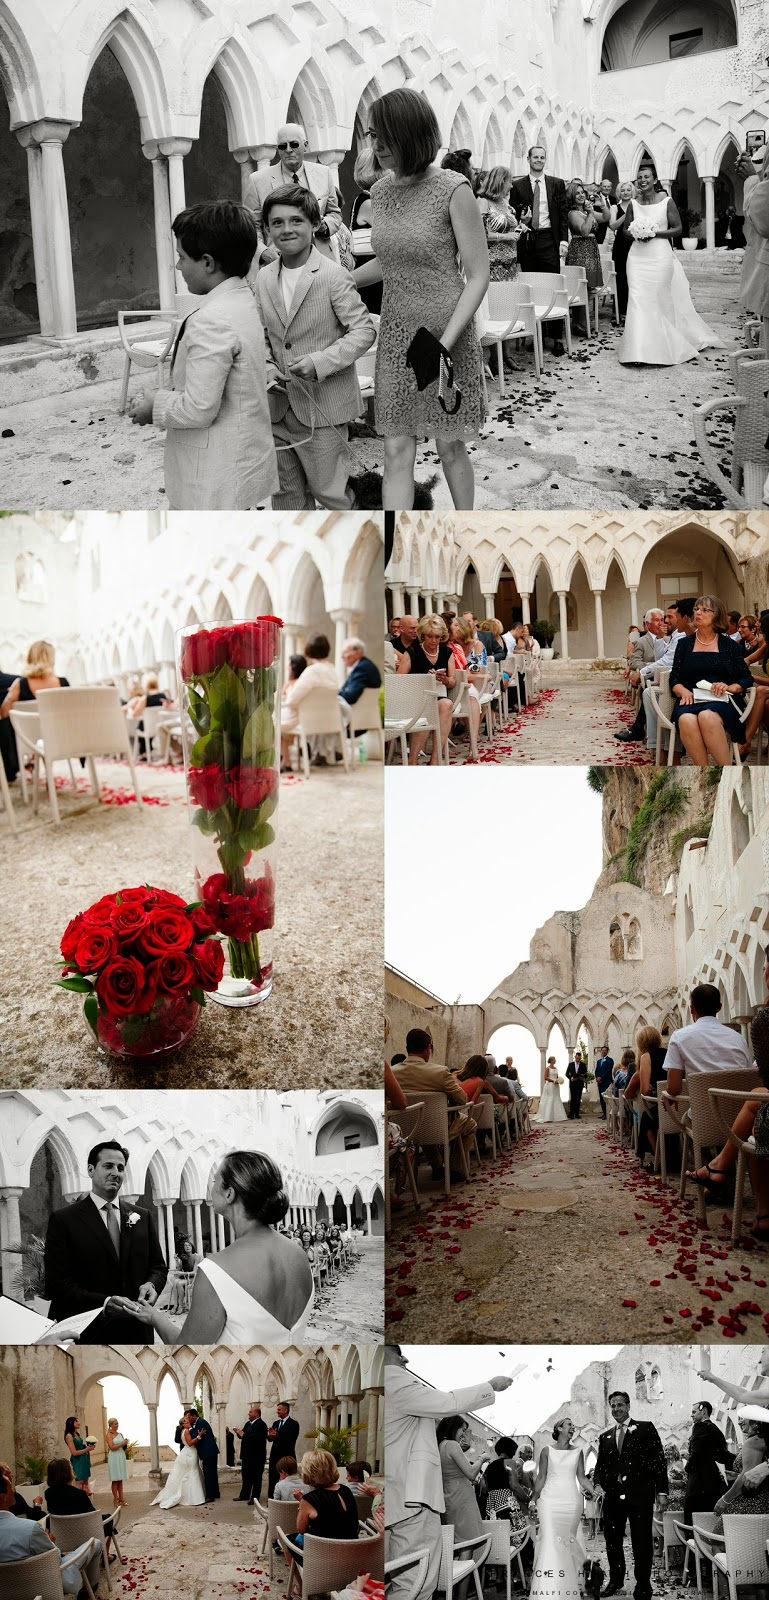 Wedding ceremony at the Hotel Convento in Amalfi